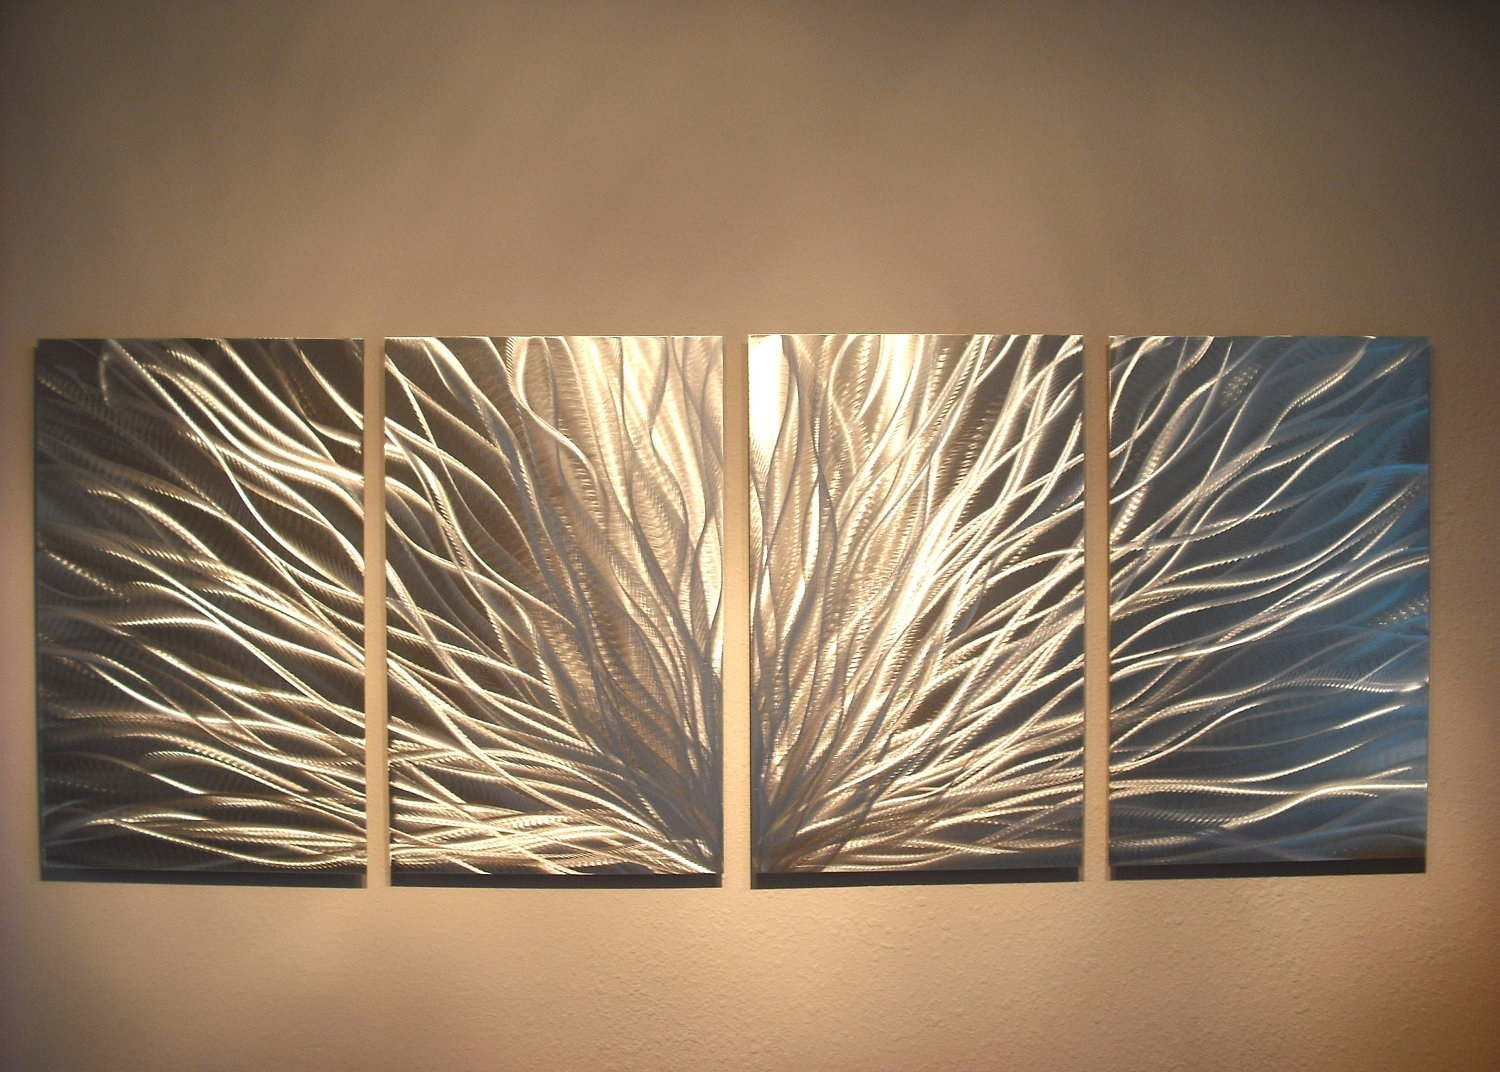 Radiance – Abstract Metal Wall Art Contemporary Modern Decor With Regard To Most Recent Diy Modern Abstract Wall Art (View 18 of 20)